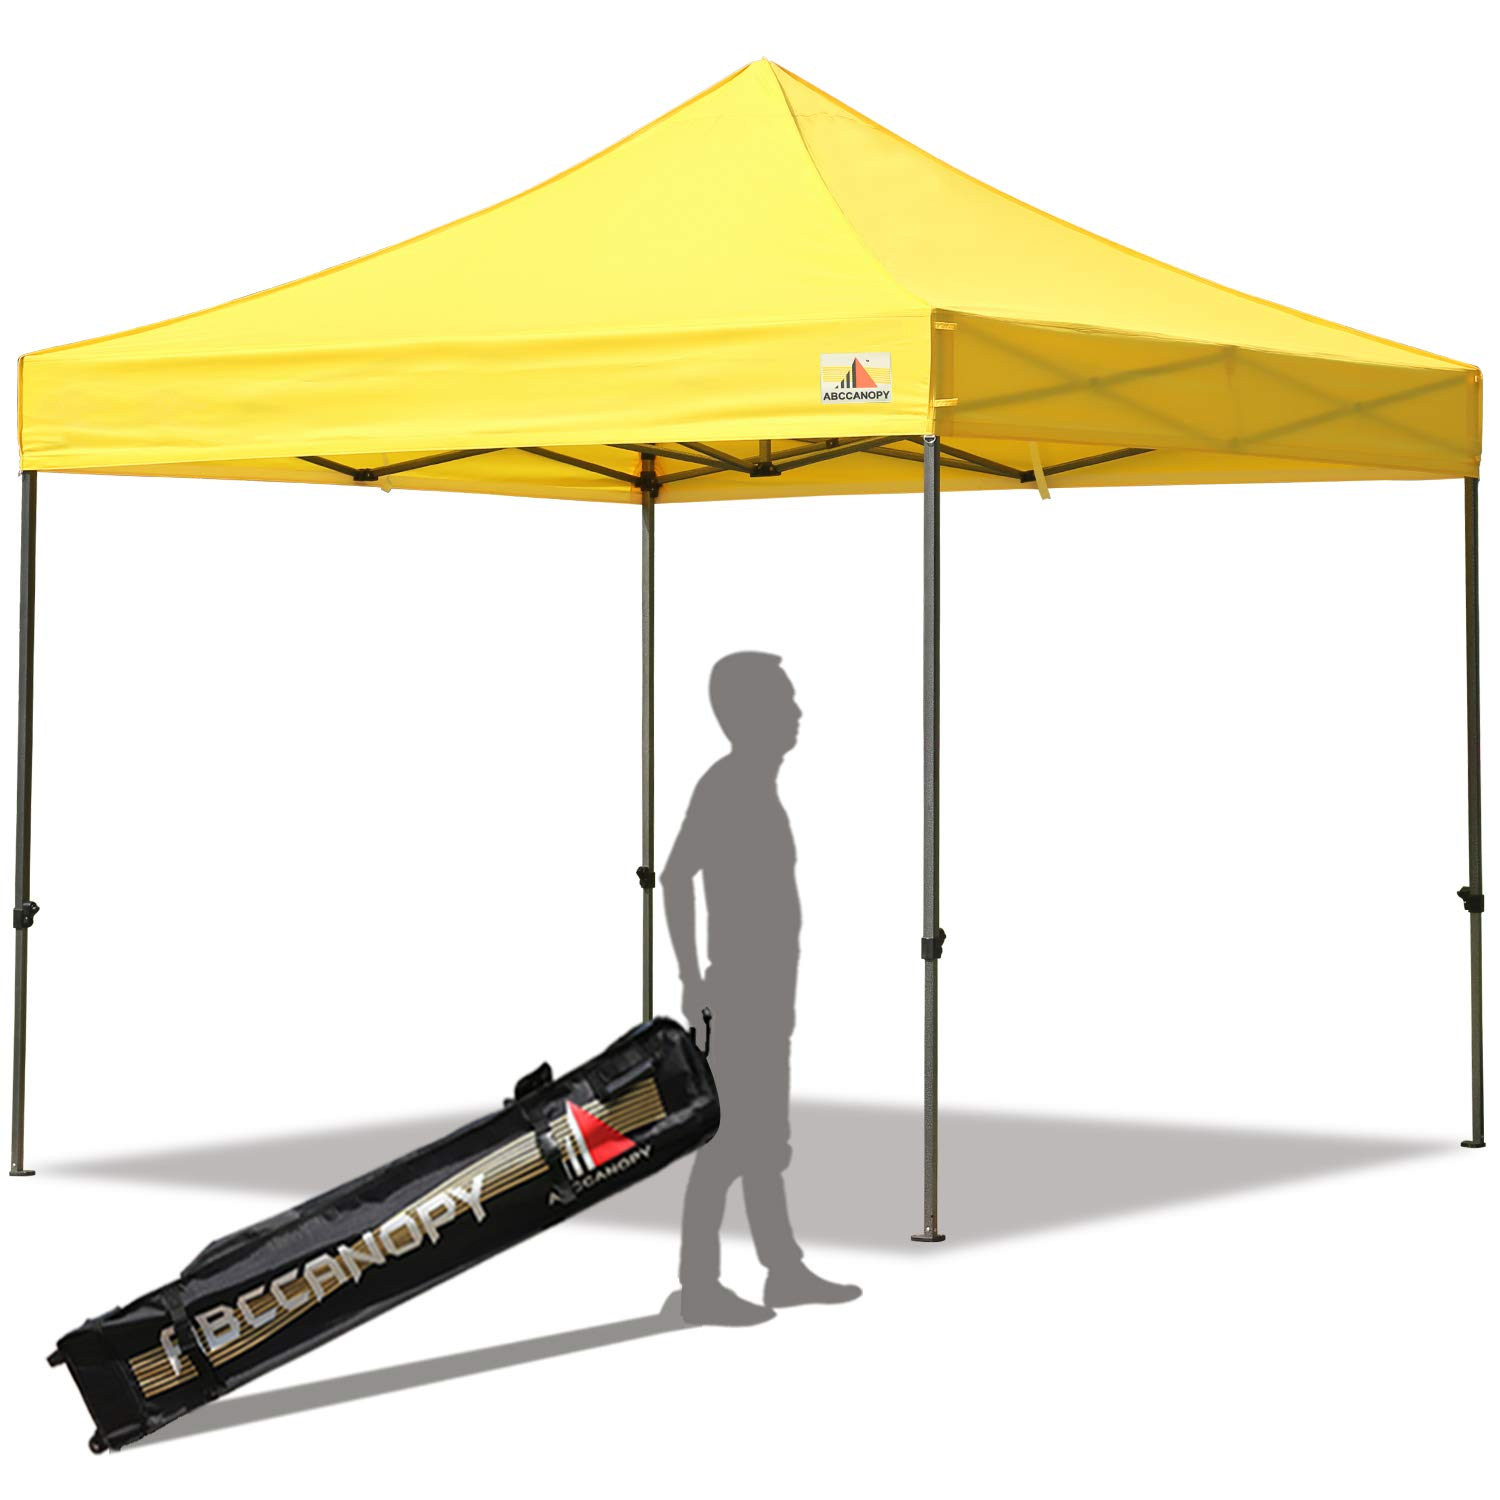 ABCCANOPY Pop up Canopy Tent Commercial Instant Shelter with Wheeled Carry Bag, 10x10 FT Yellow